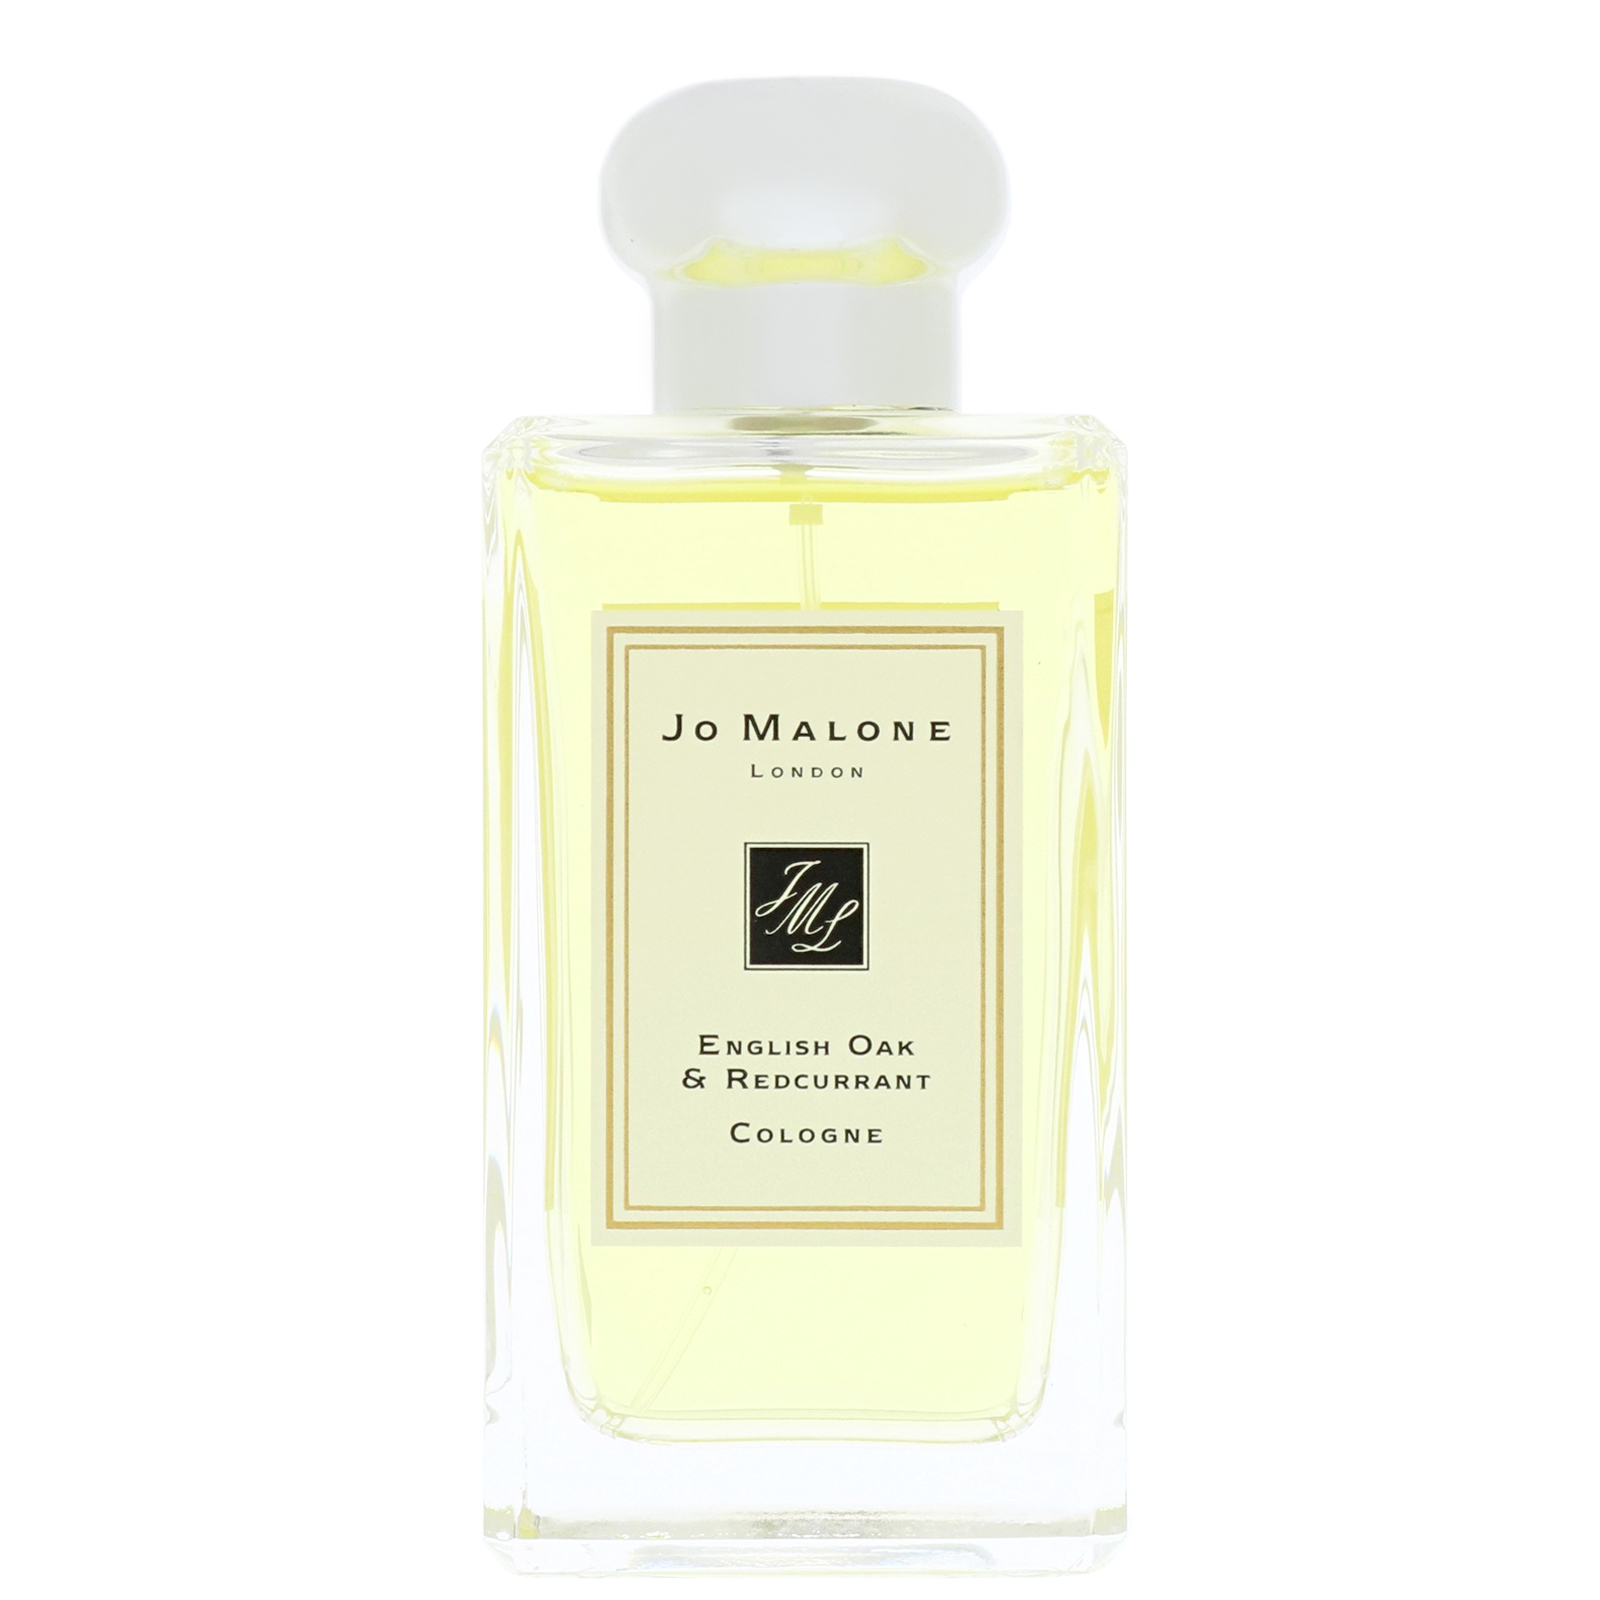 Jo Malone English Oak & Redcurrant Eau de Cologne Spray 100ml